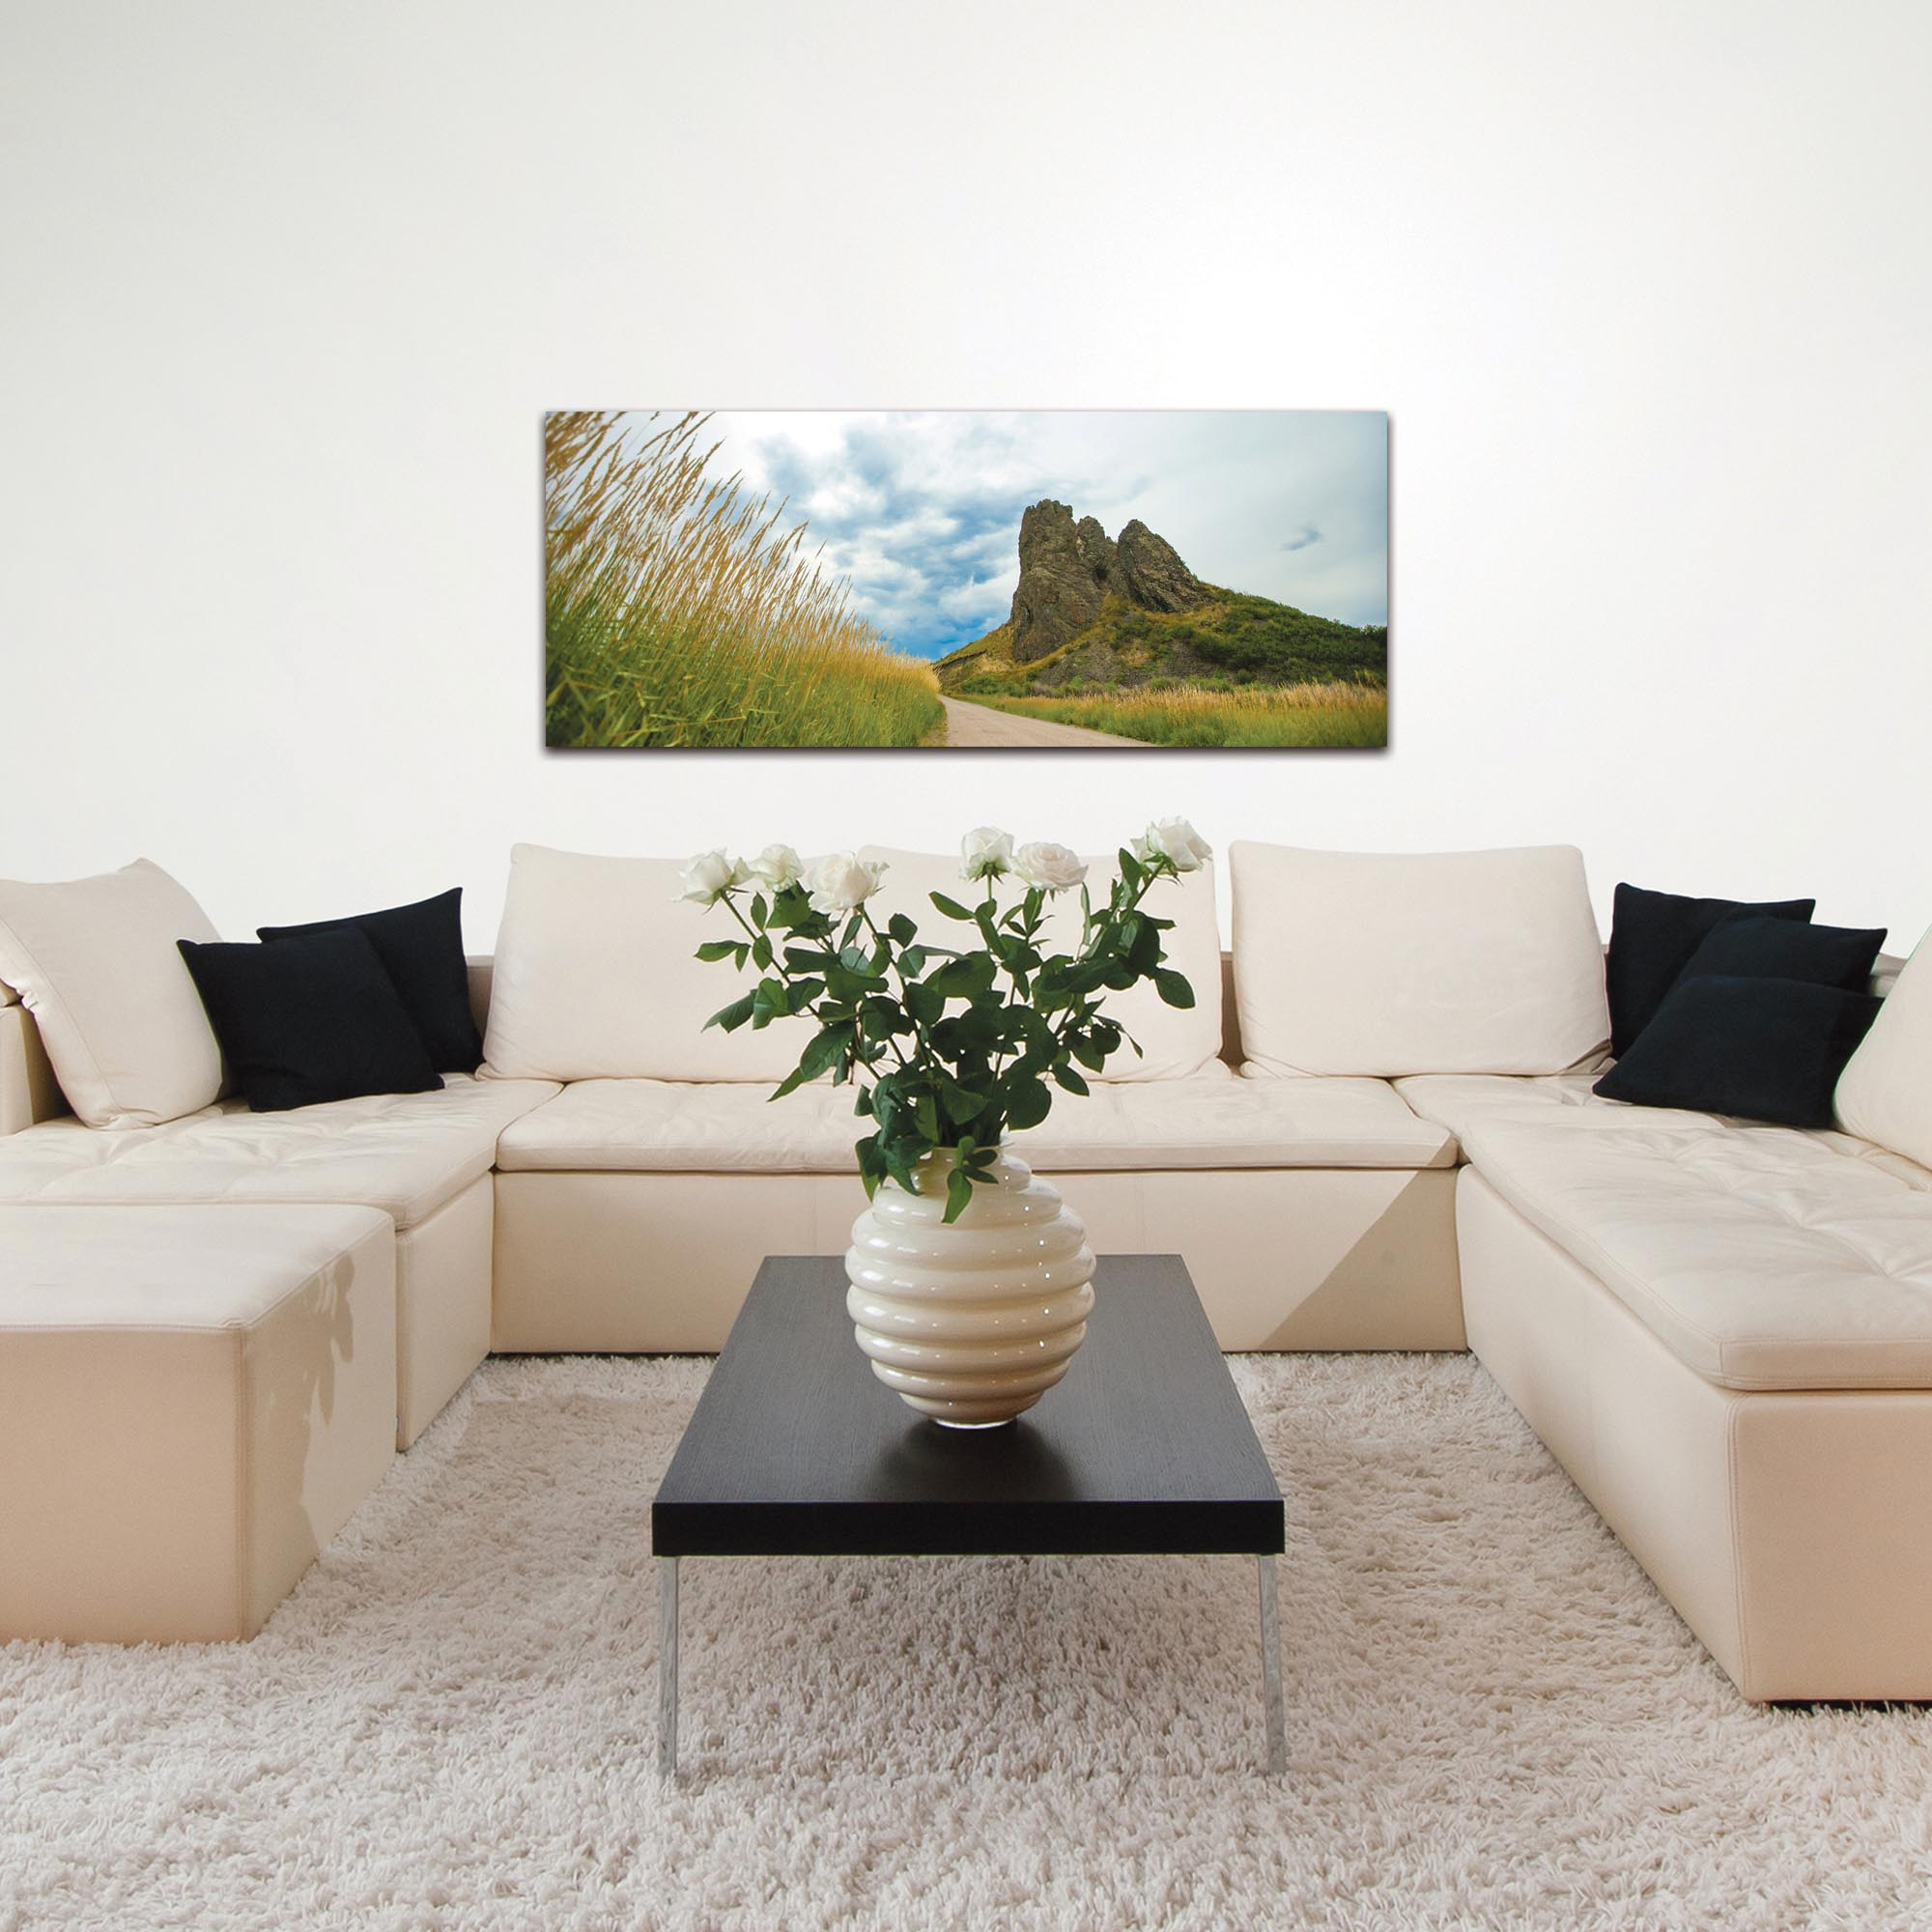 Landscape Photography 'Around the Bend' - Winding Road Art on Metal or Plexiglass - Lifestyle View